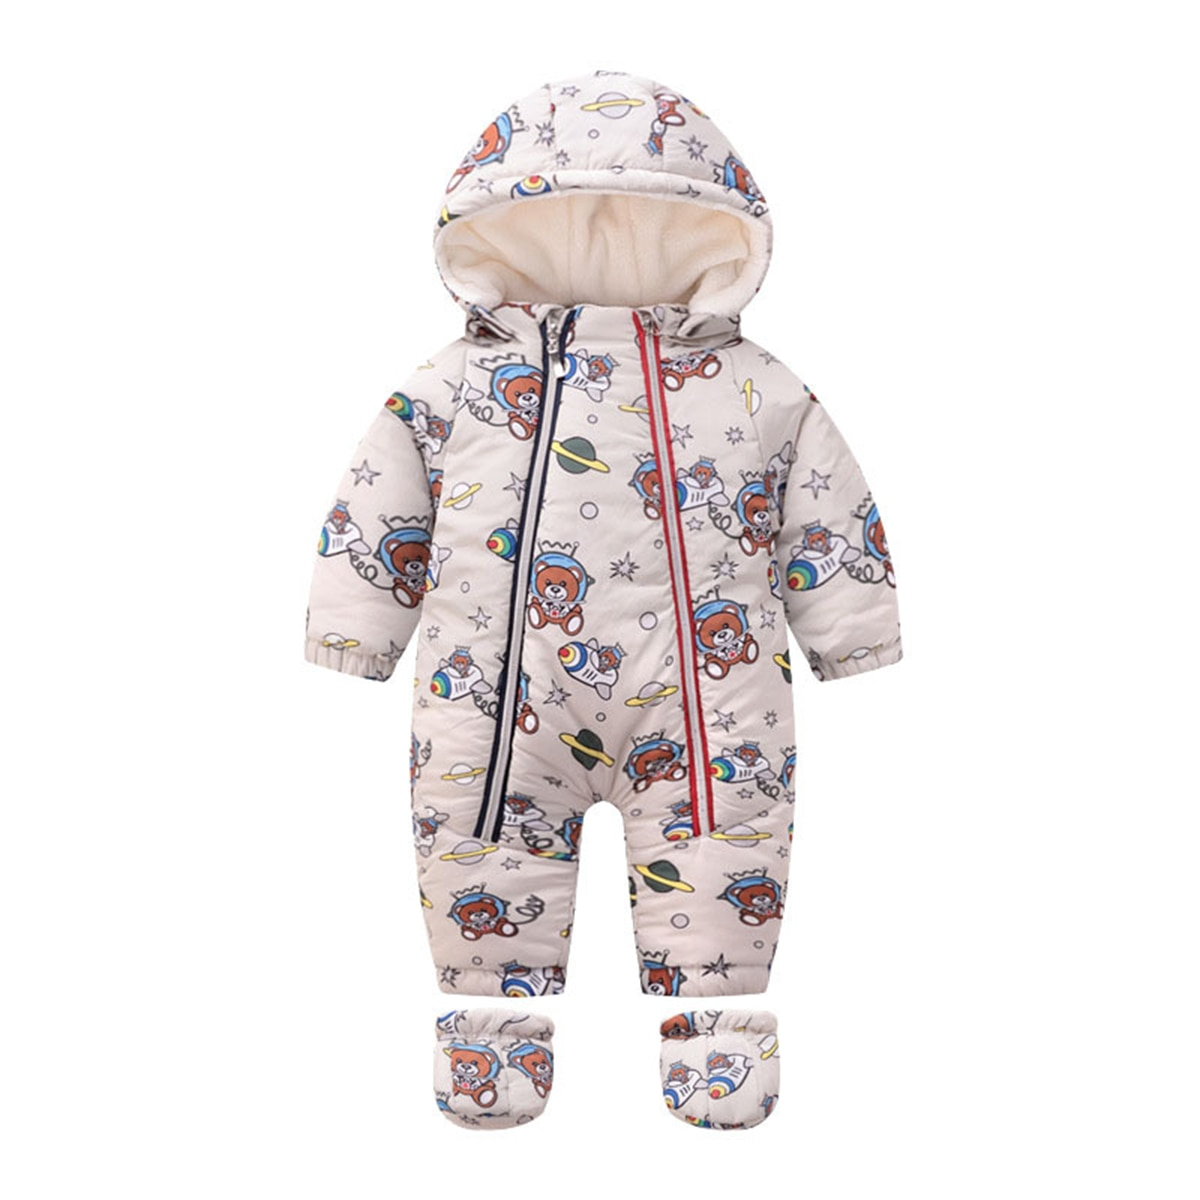 2021-autumn-winter-newborn-rompers-hooded-warm-cotton-baby-boys-jumpsuit-toddler-girls-snowsuit-infant-baby-girl-overalls